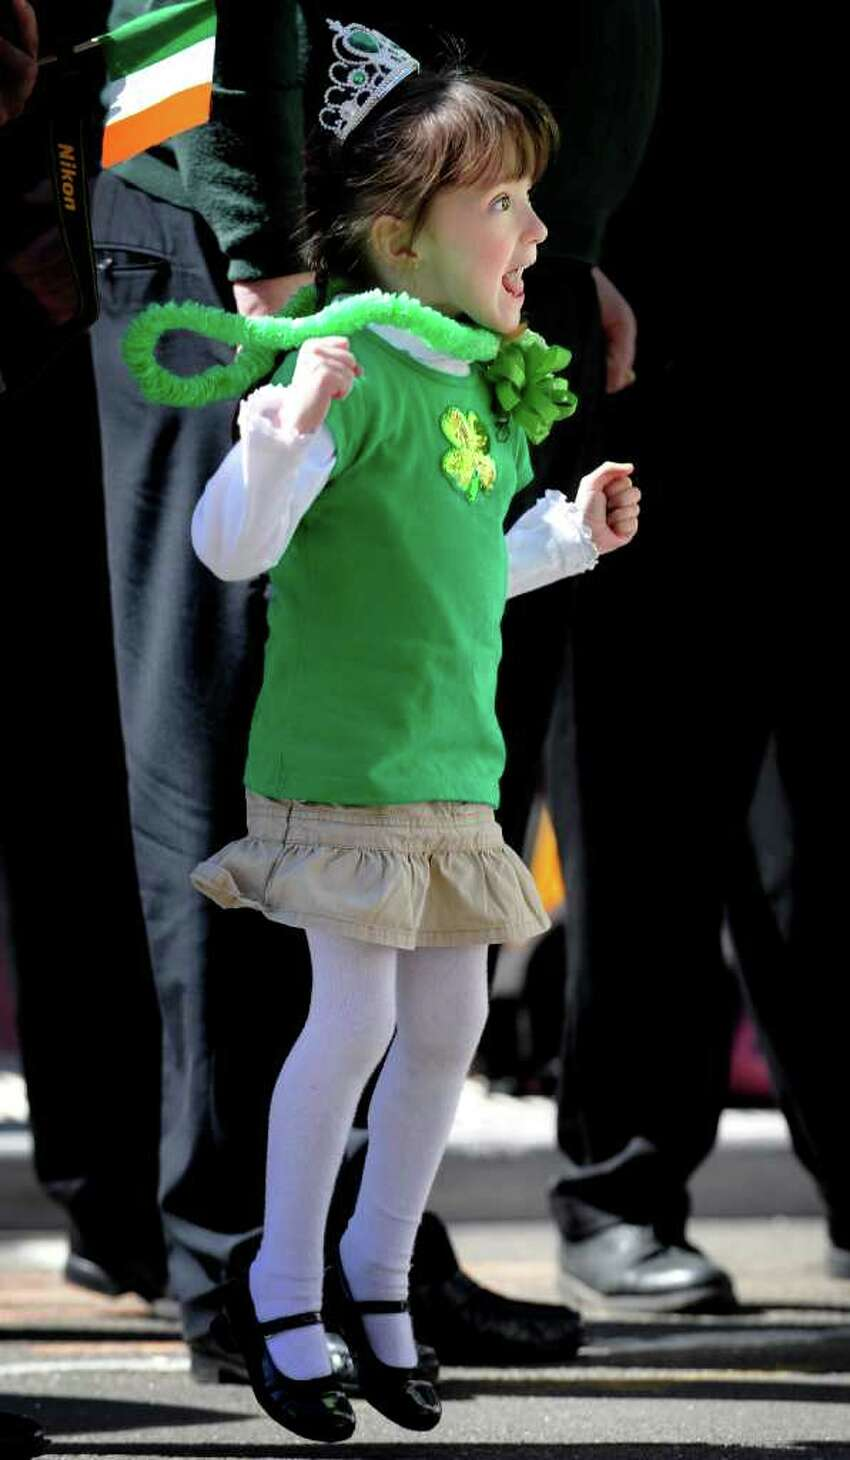 Four-year-old Paige Fabian, of Stratford, cheers as the St. Patrick's Day parade moves down Main Street in Bridgeport, Conn. Thursday, Mar. 17, 2011.